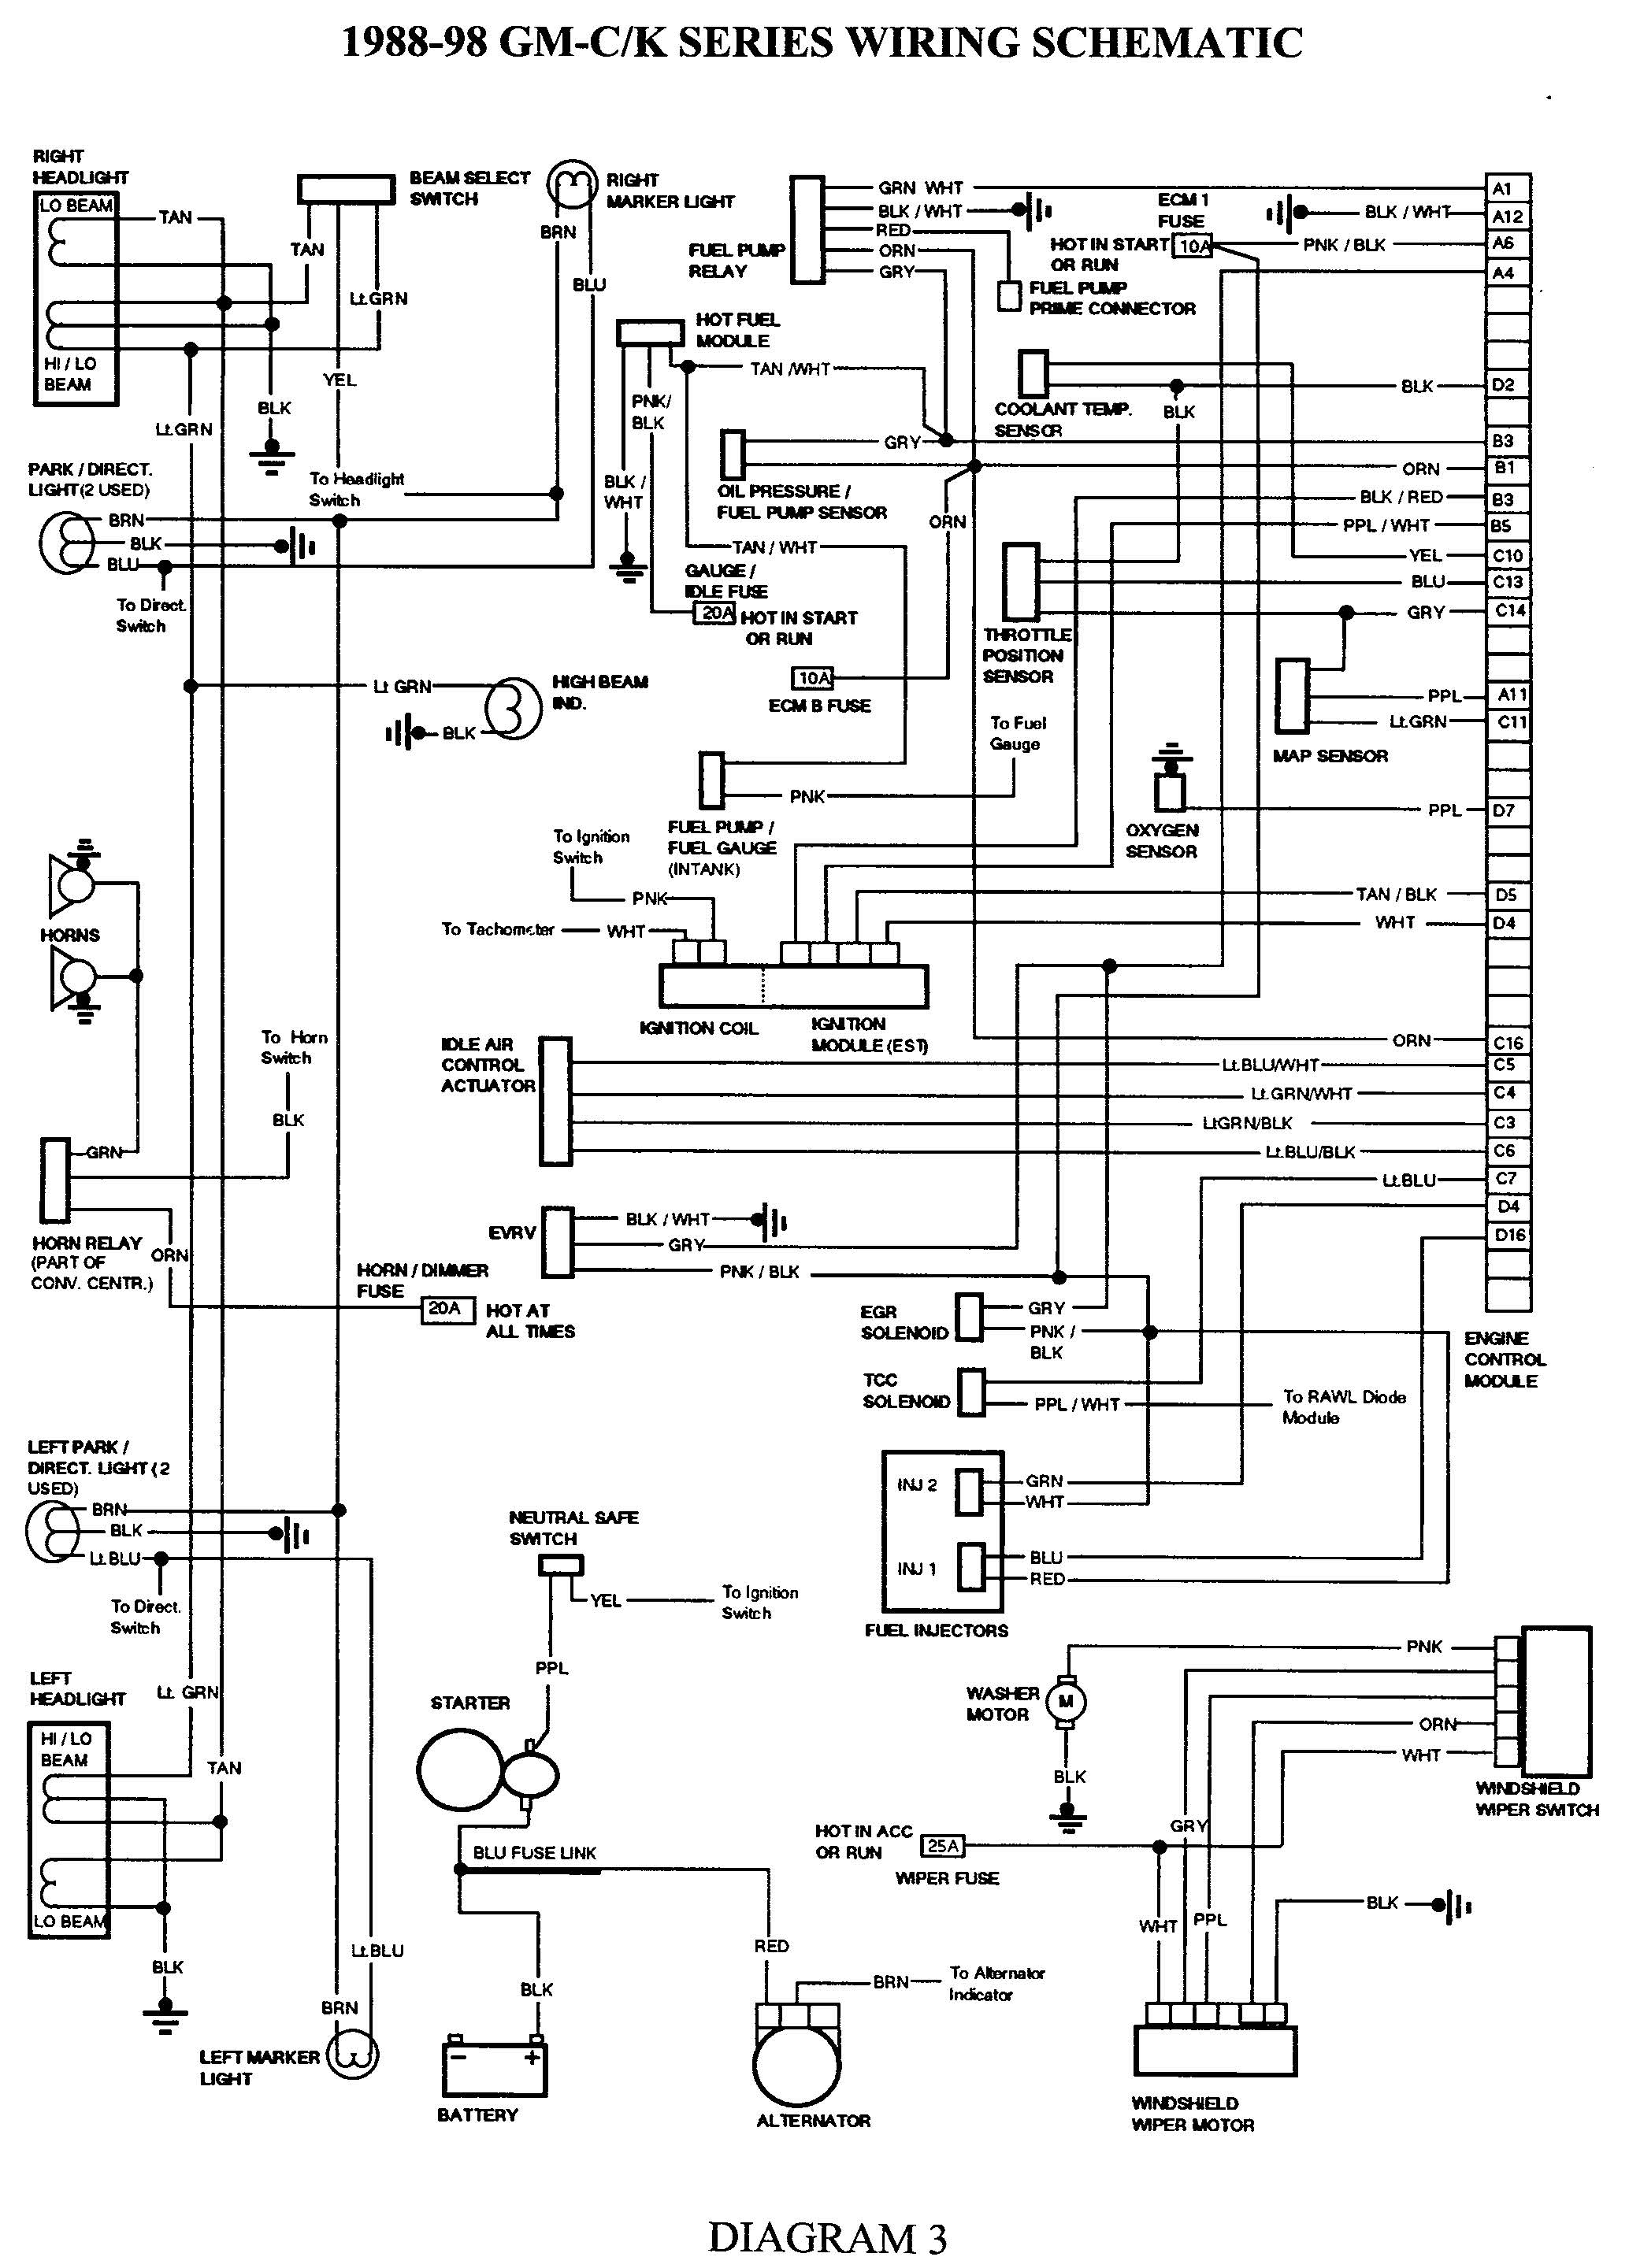 chevy k1500 wiring diagram hecho chevy wiring diagrams chevy k wiring diagram hecho 2014 10 16 092350 88 c1500 wiring diagram